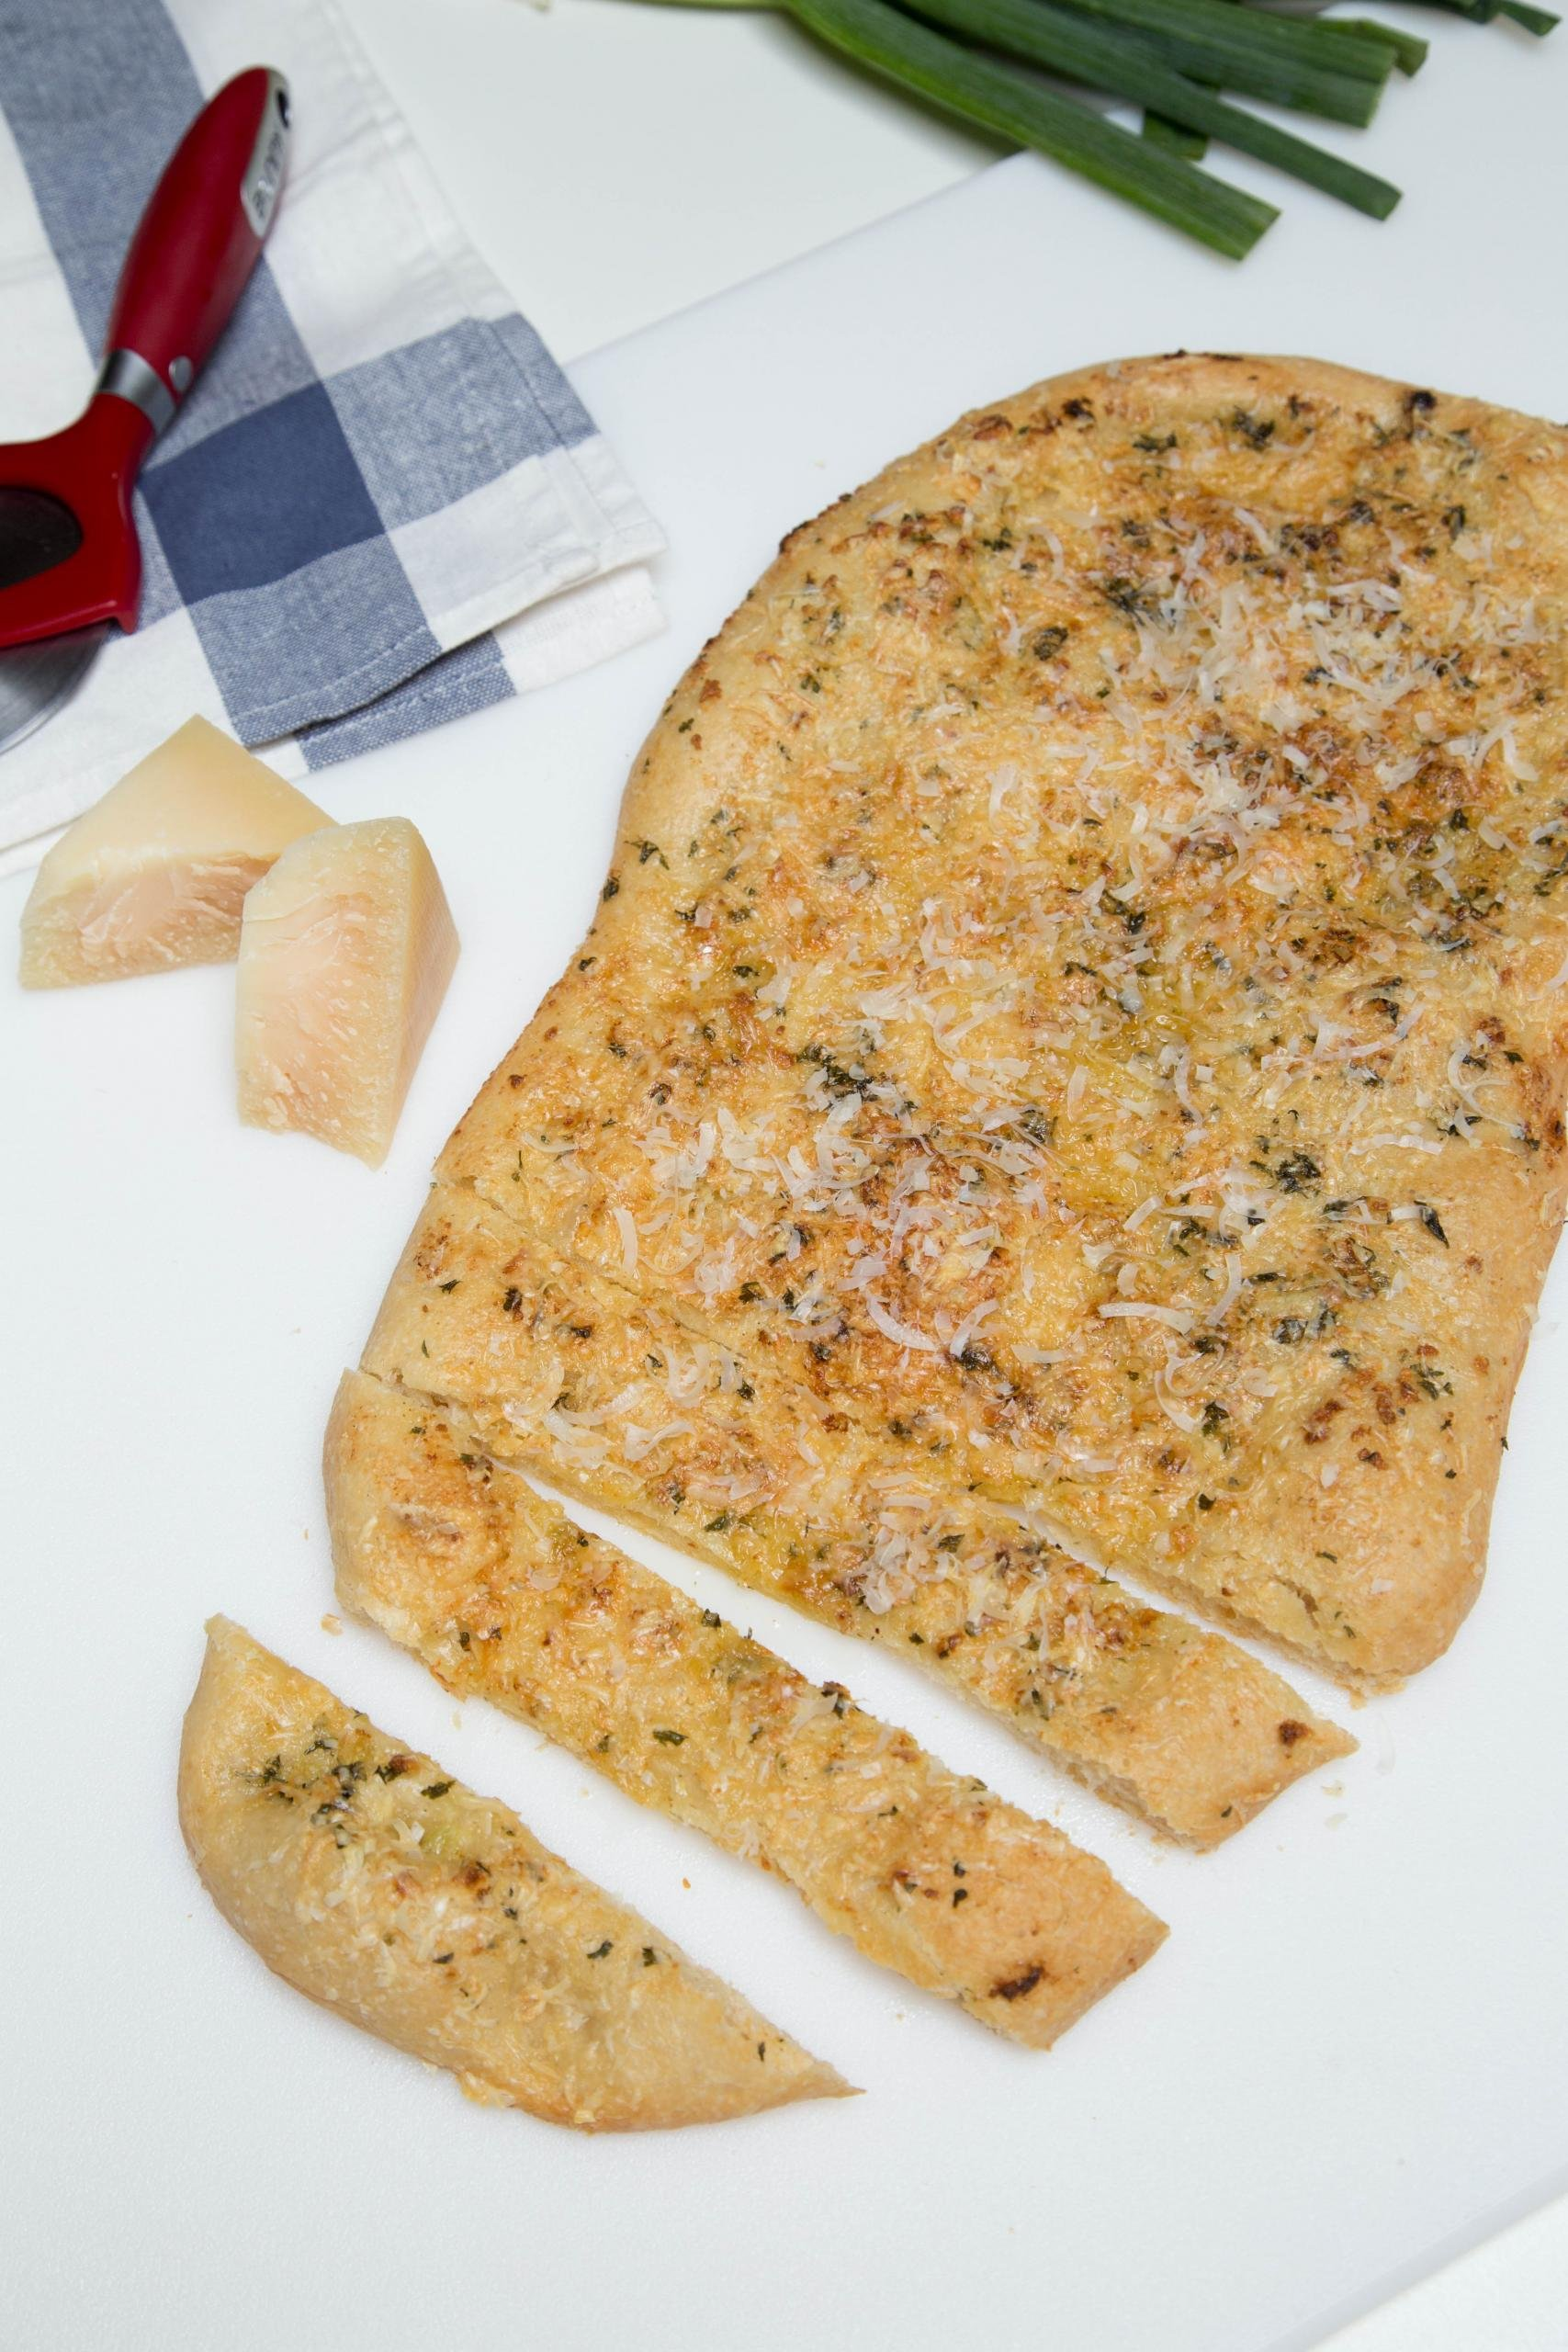 Parmesan Garlic Flatbread cut into long slices